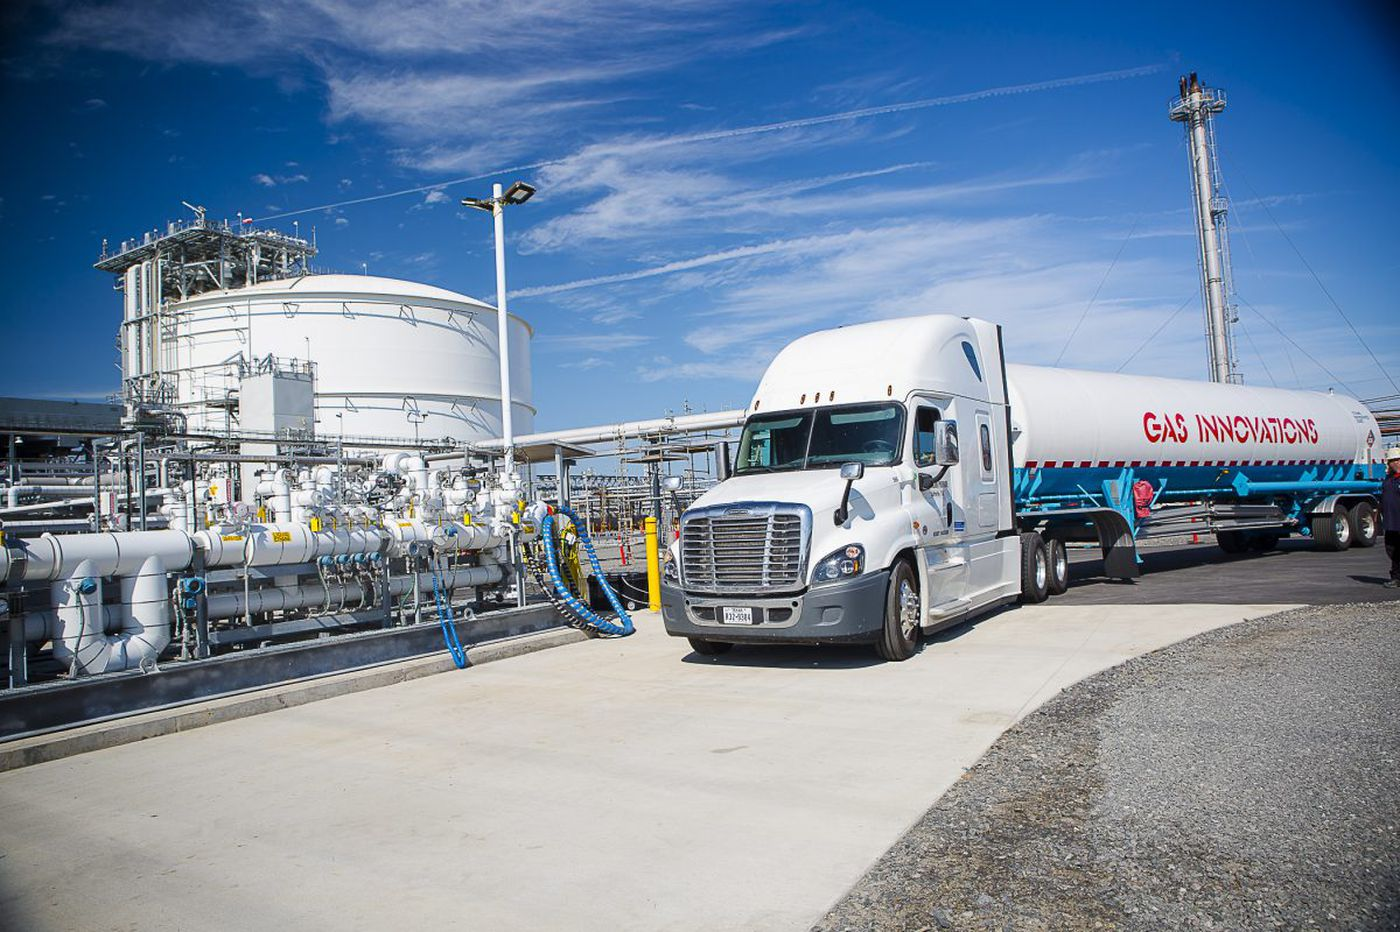 A new domestic market opens for Marcellus ethane, via Marcus Hook